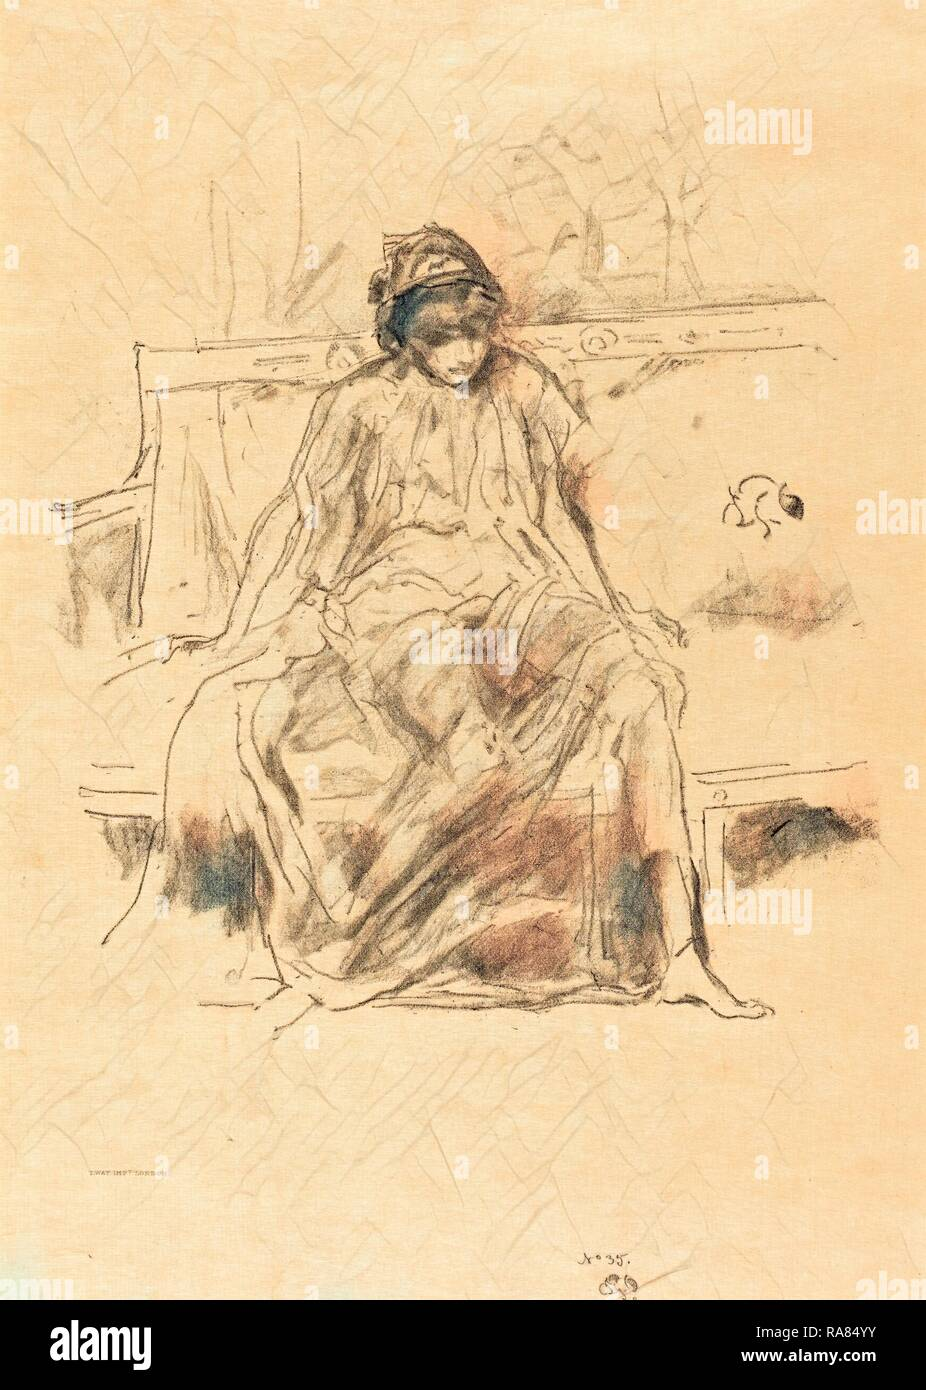 James McNeill Whistler (American, 1834 - 1903), The Draped Figure Seated, 1893, lithograph. Reimagined - Stock Image